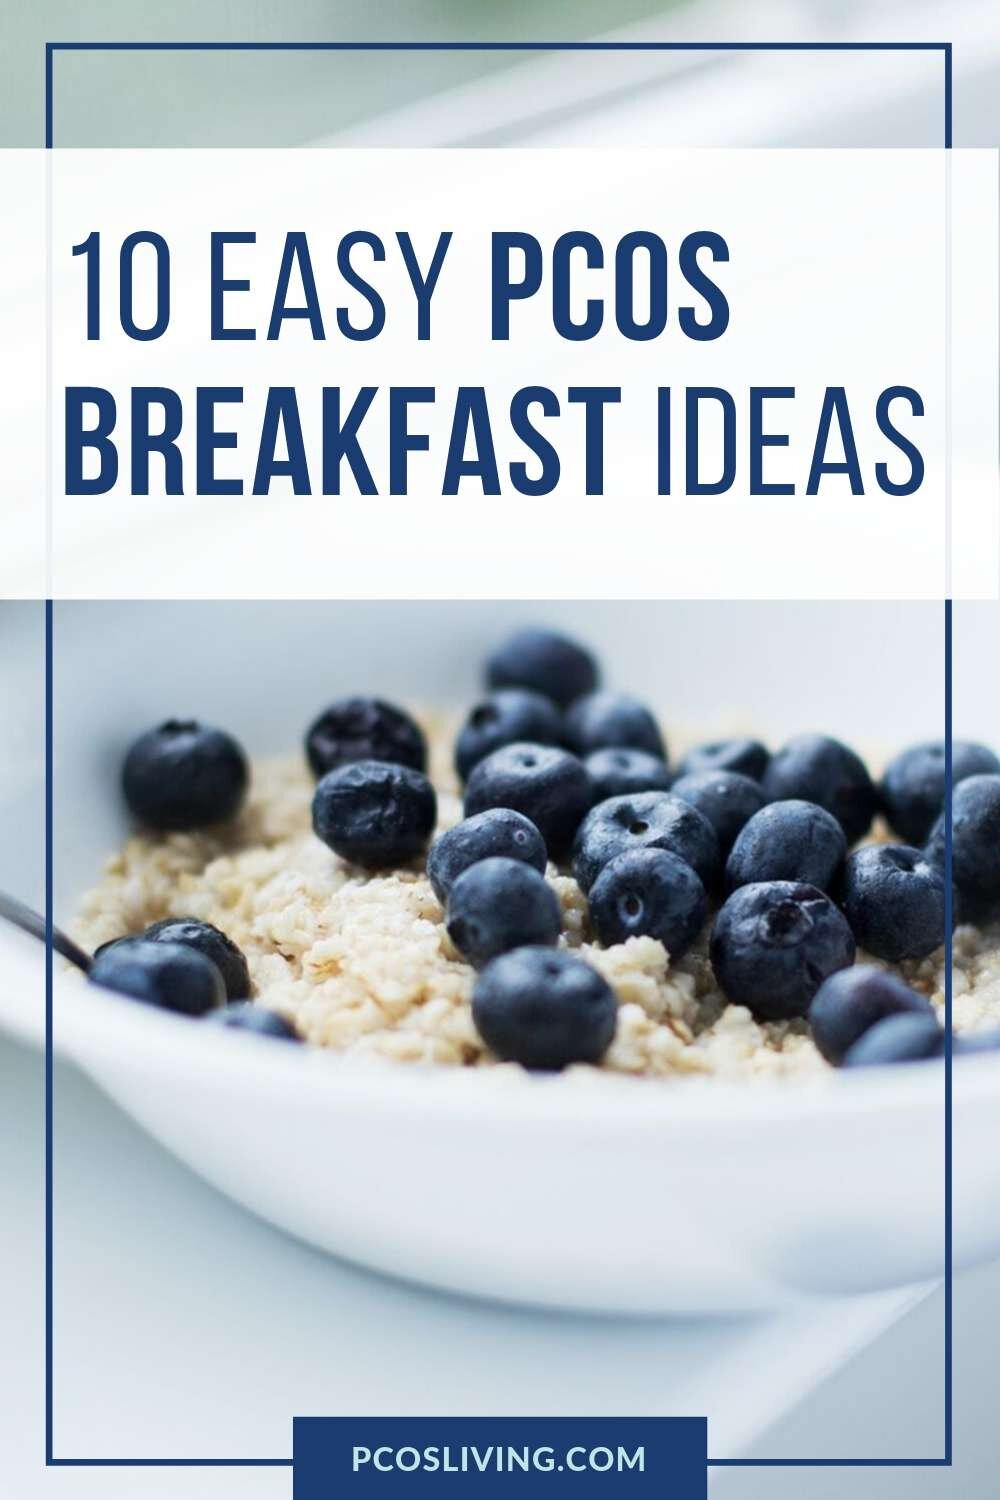 10 Easy PCOS Breakfast ideas to get your day started right! Read to find out how to improve your PCOS symptoms today with these quick and easy breakfast ideas. #pcosdiet #pcosmealplan #pcossimplemealplan #pcosbreakfast